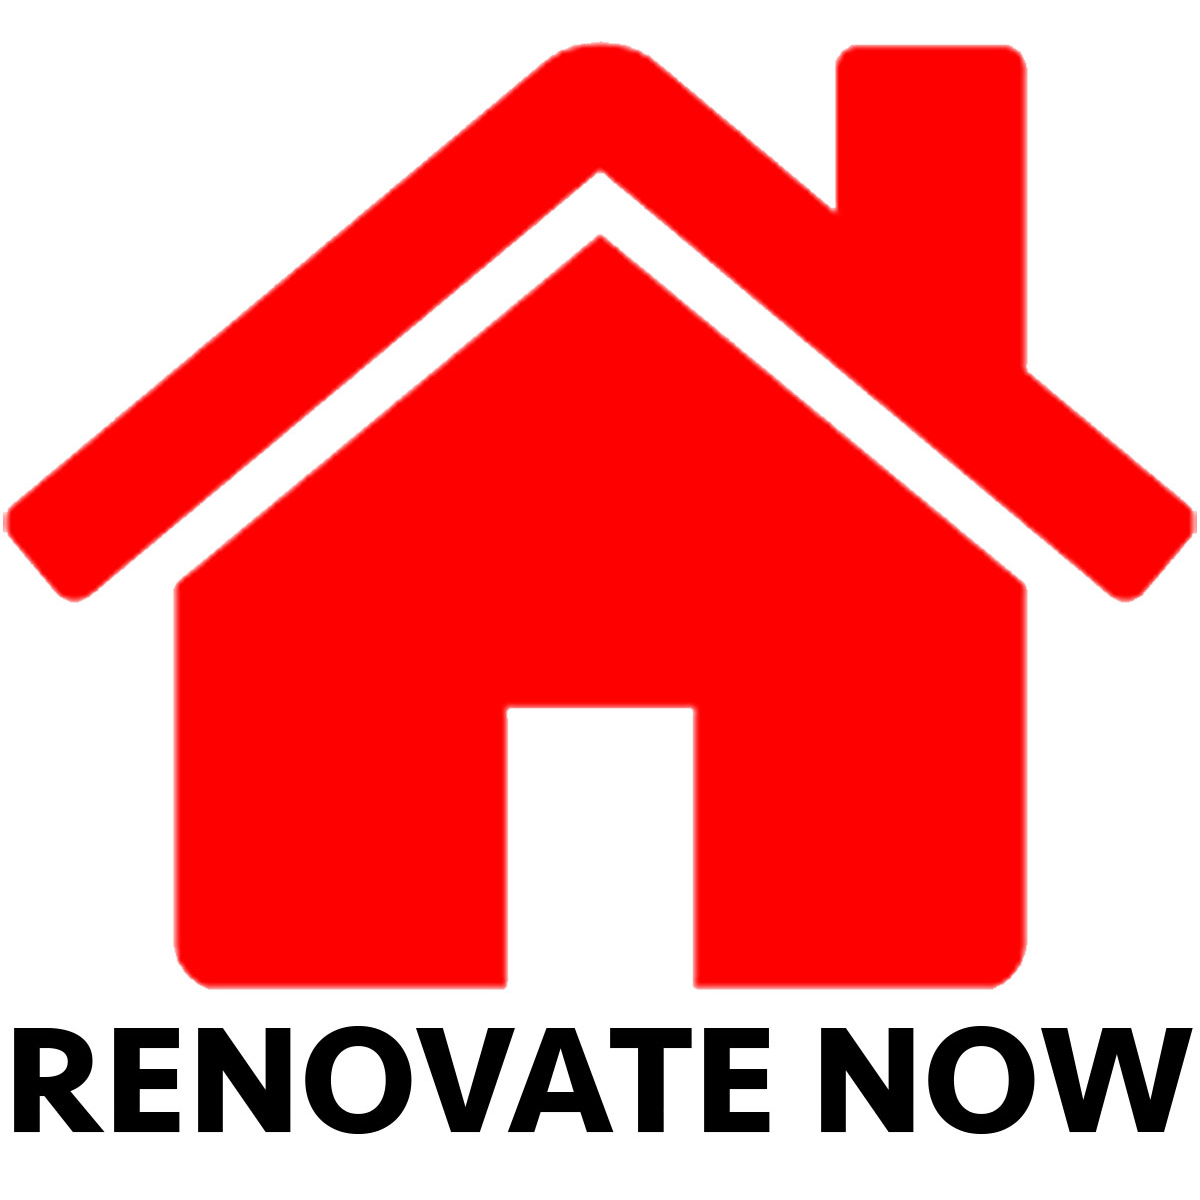 Renovate red house square.png